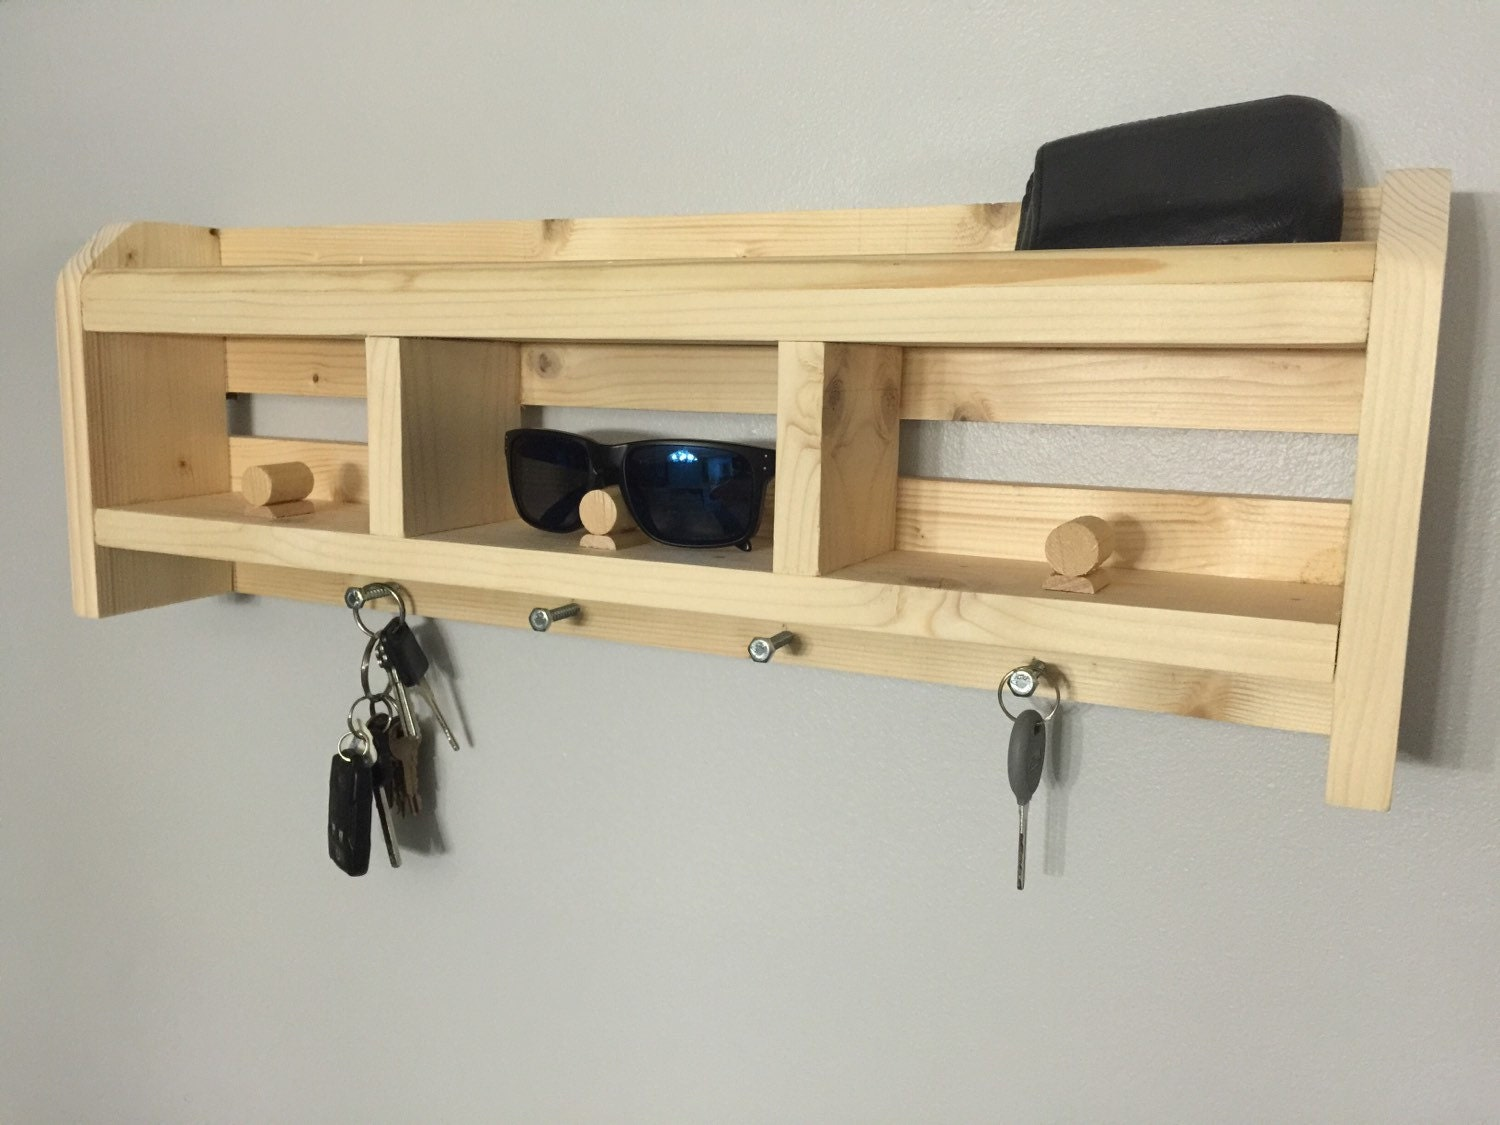 Wood Sunglass Holder for wall A great gift for a new home